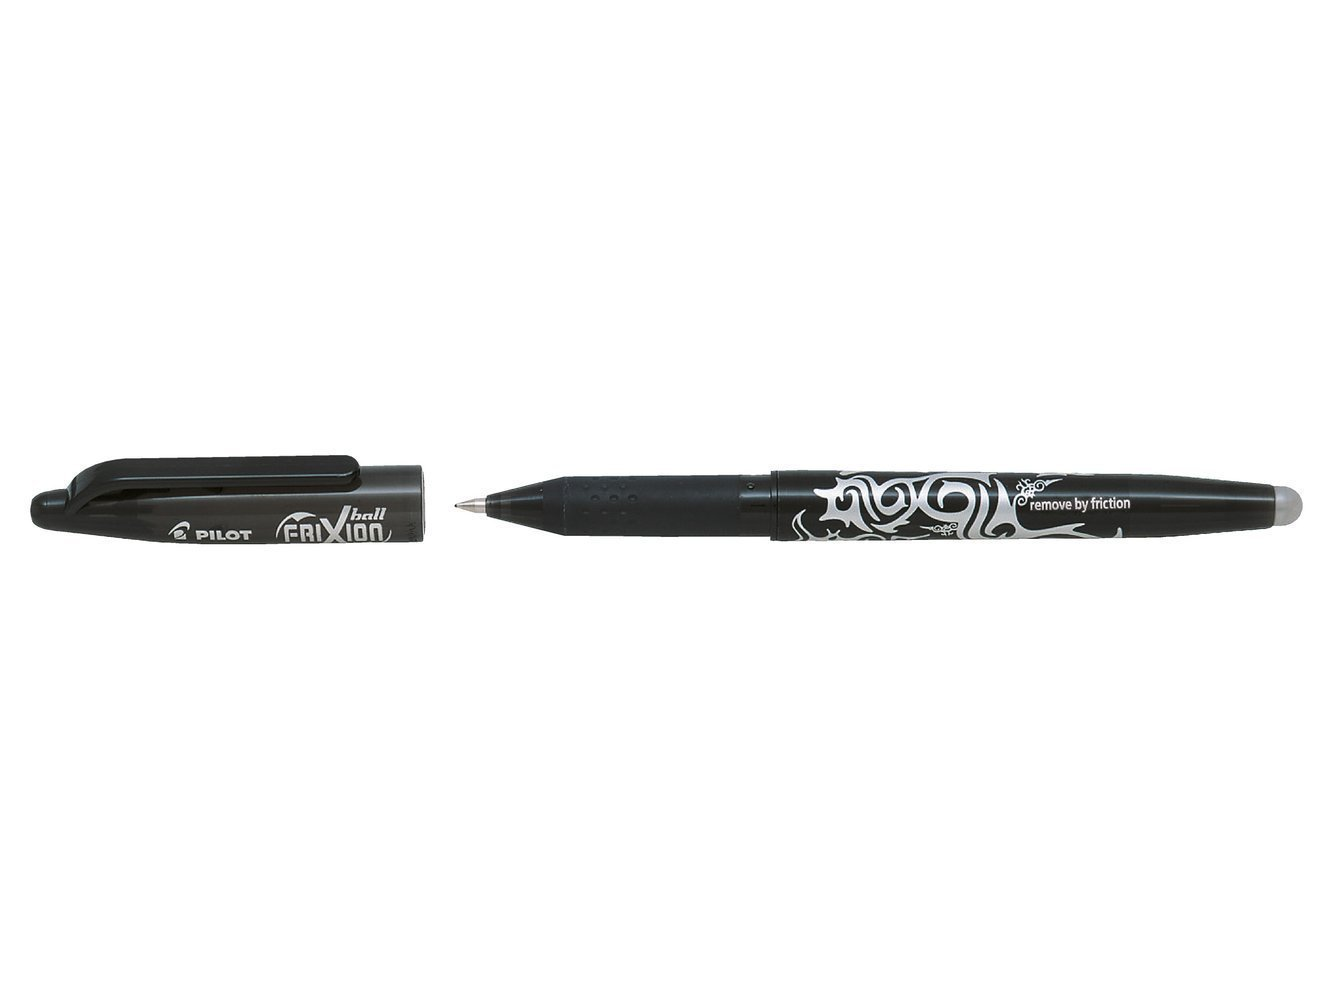 PILOT FRIXION BALL - GEL INK ROLLER - BLACK- MEDIUM TIP (0.7MM)